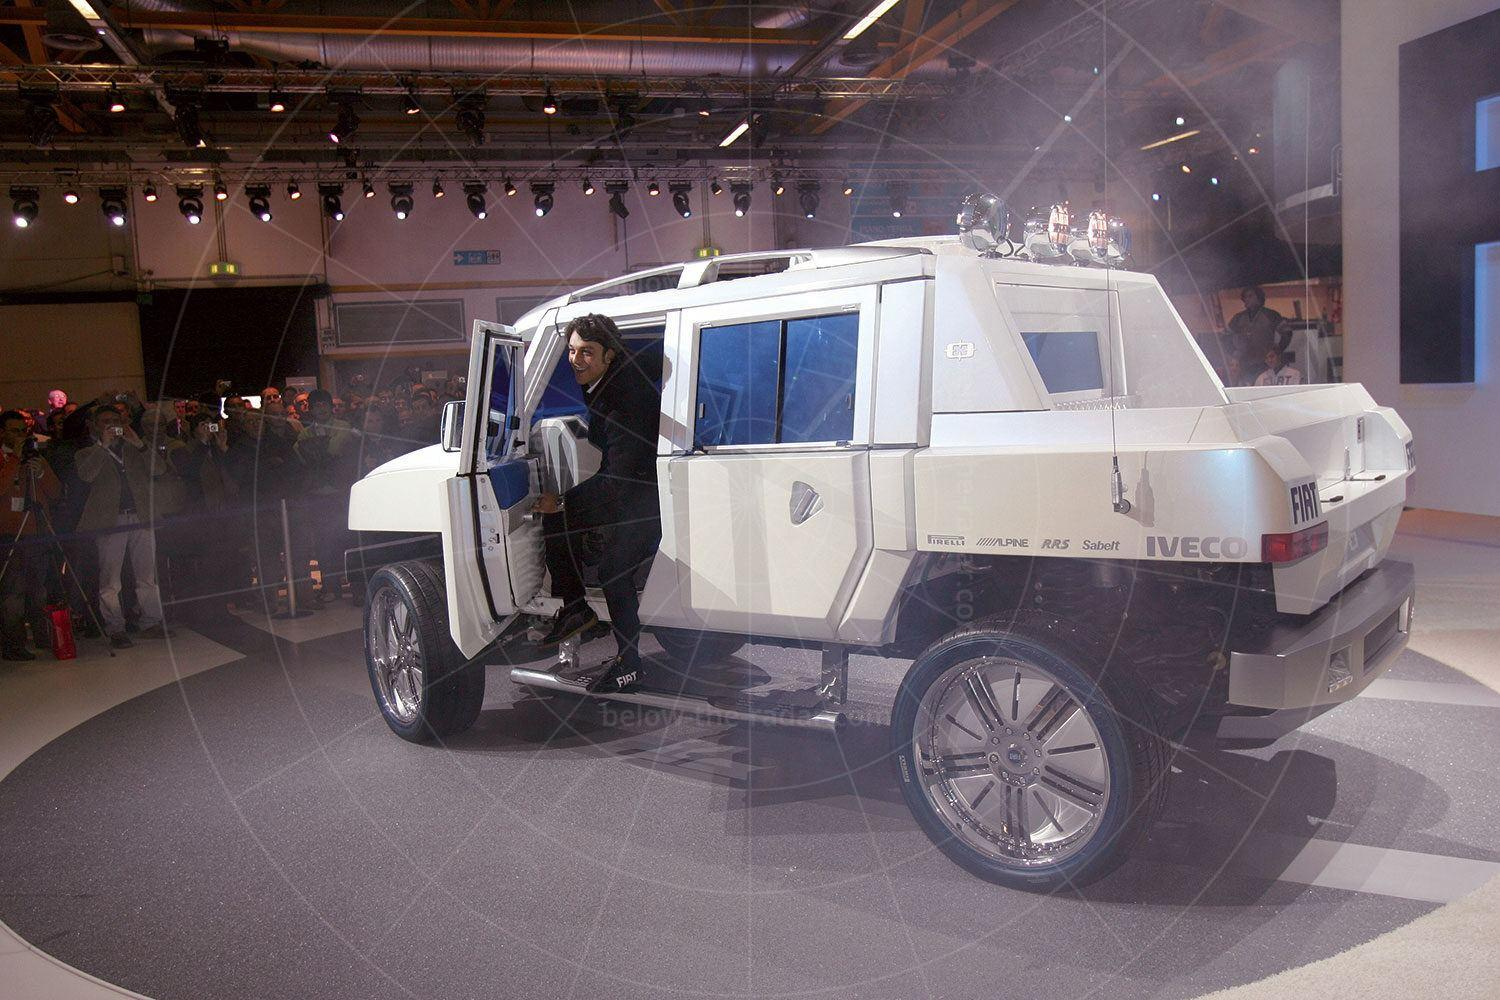 Fiat Oltre being unveiled at the 2005 Bologna motor show Pic: Fiat   Fiat Oltre being unveiled at the 2005 Bologna motor show